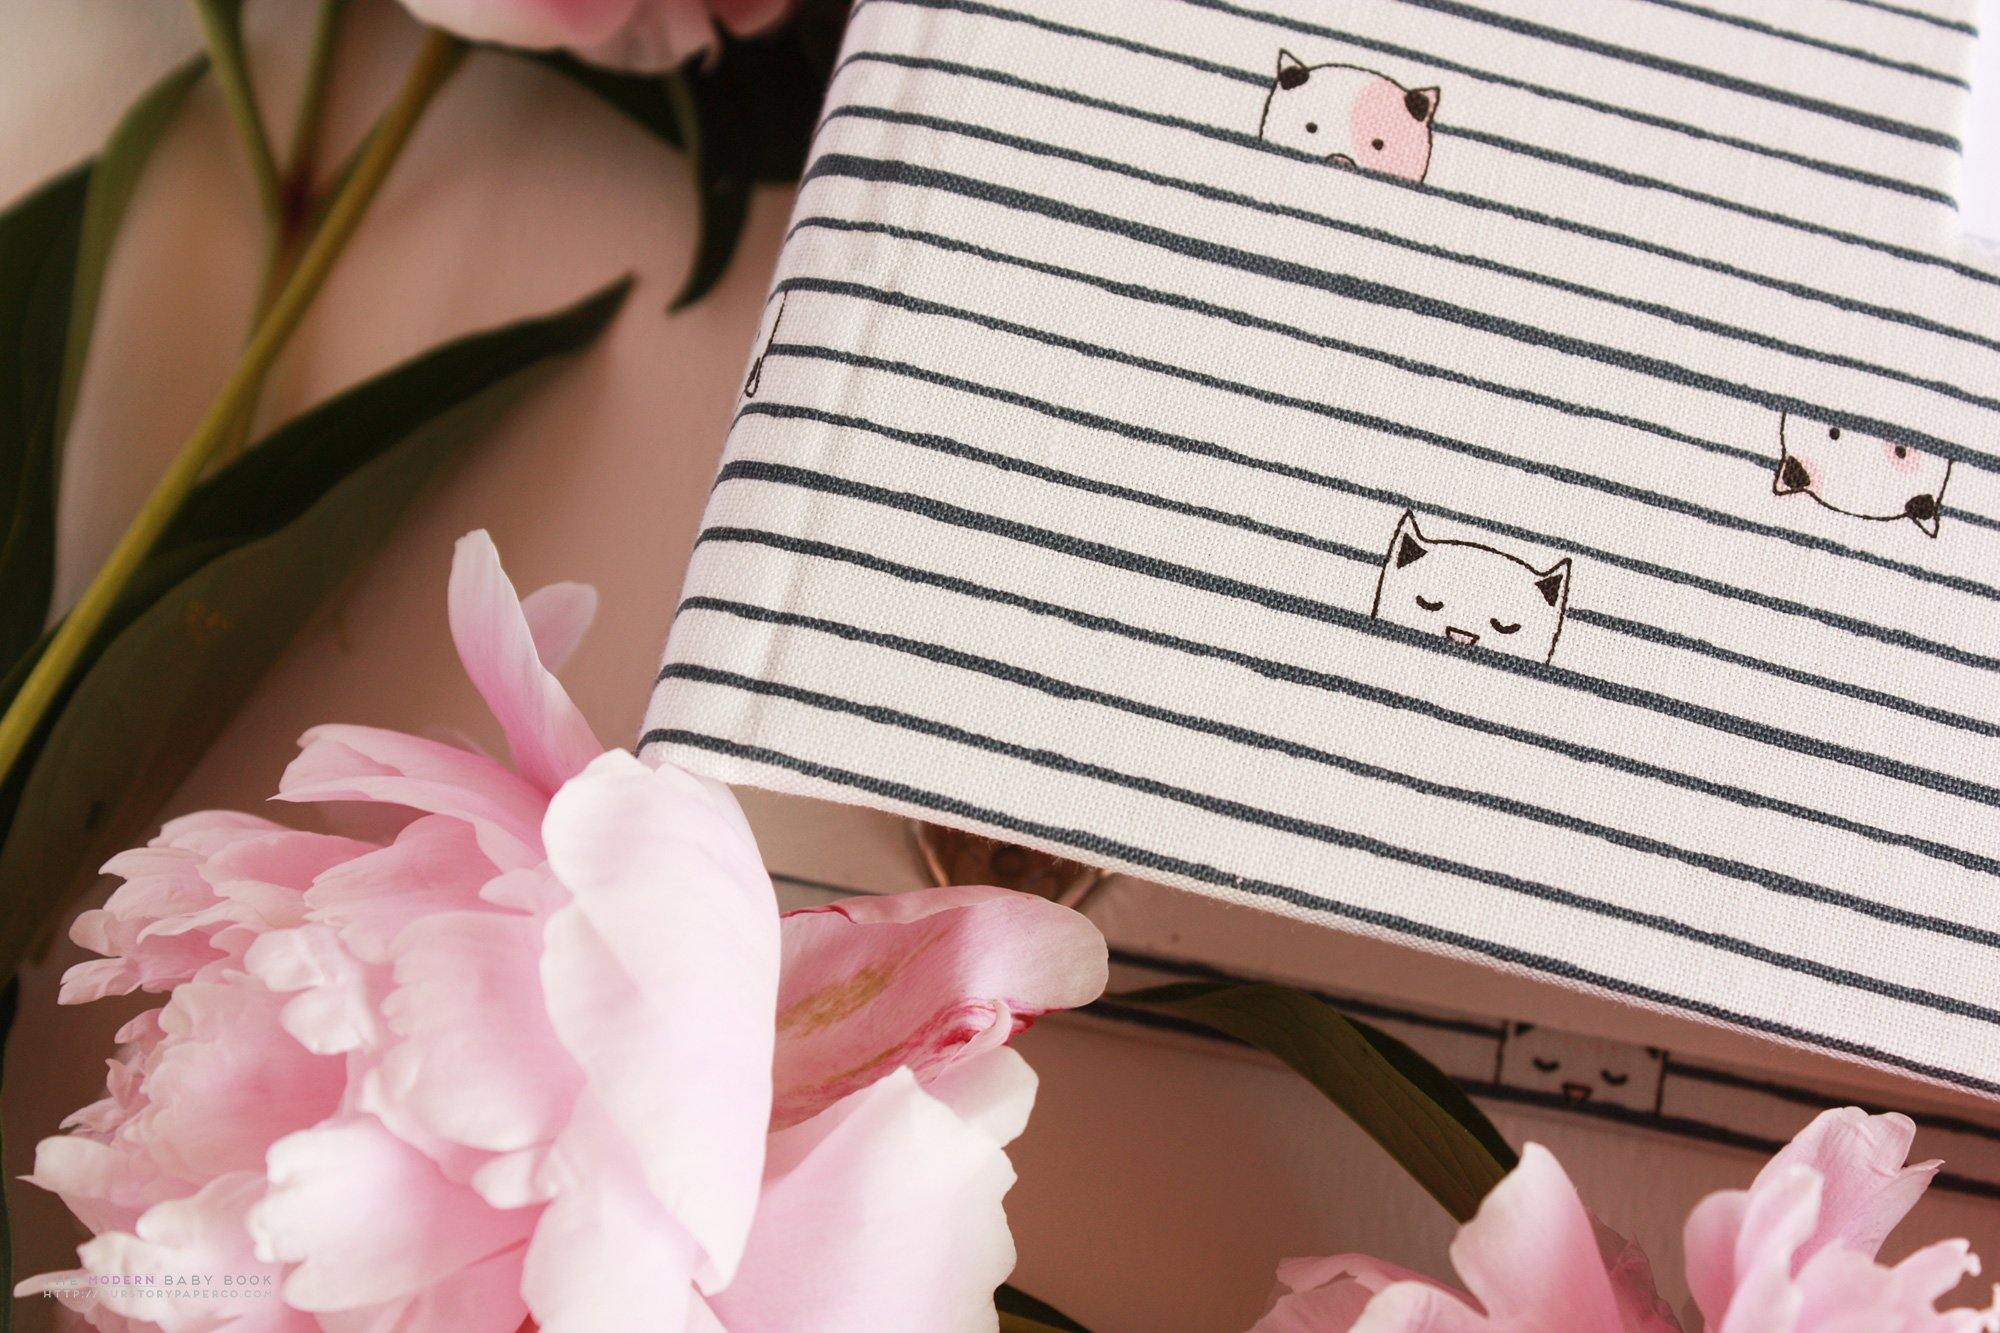 Peekaboo Kitty Paradise Modern Baby Book - Our Story Paper Co.